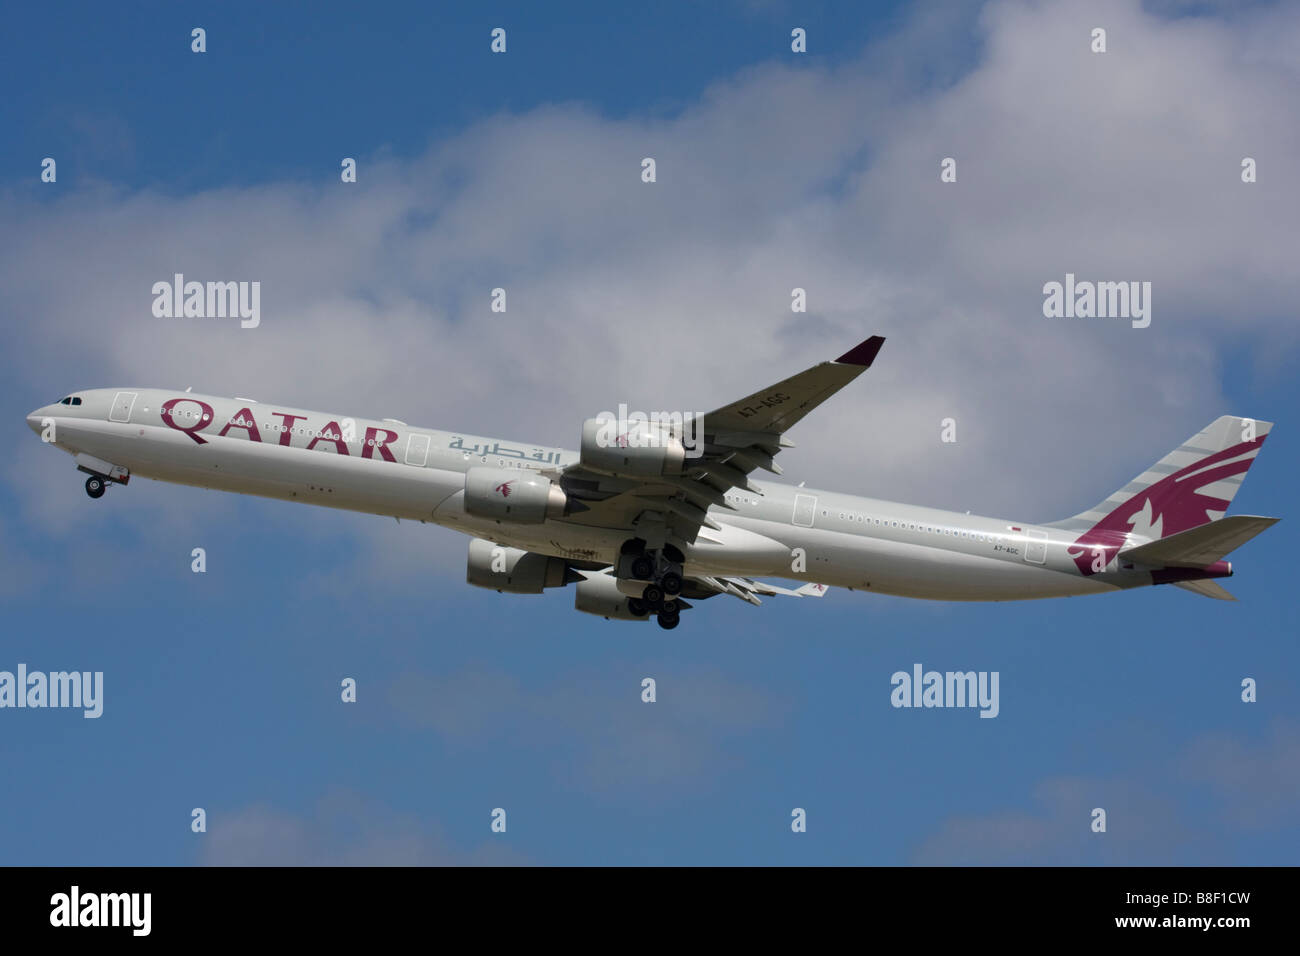 Qatar Airways Airbus A340-642 departure at London Heathrow Airport, United Kingdom Stock Photo